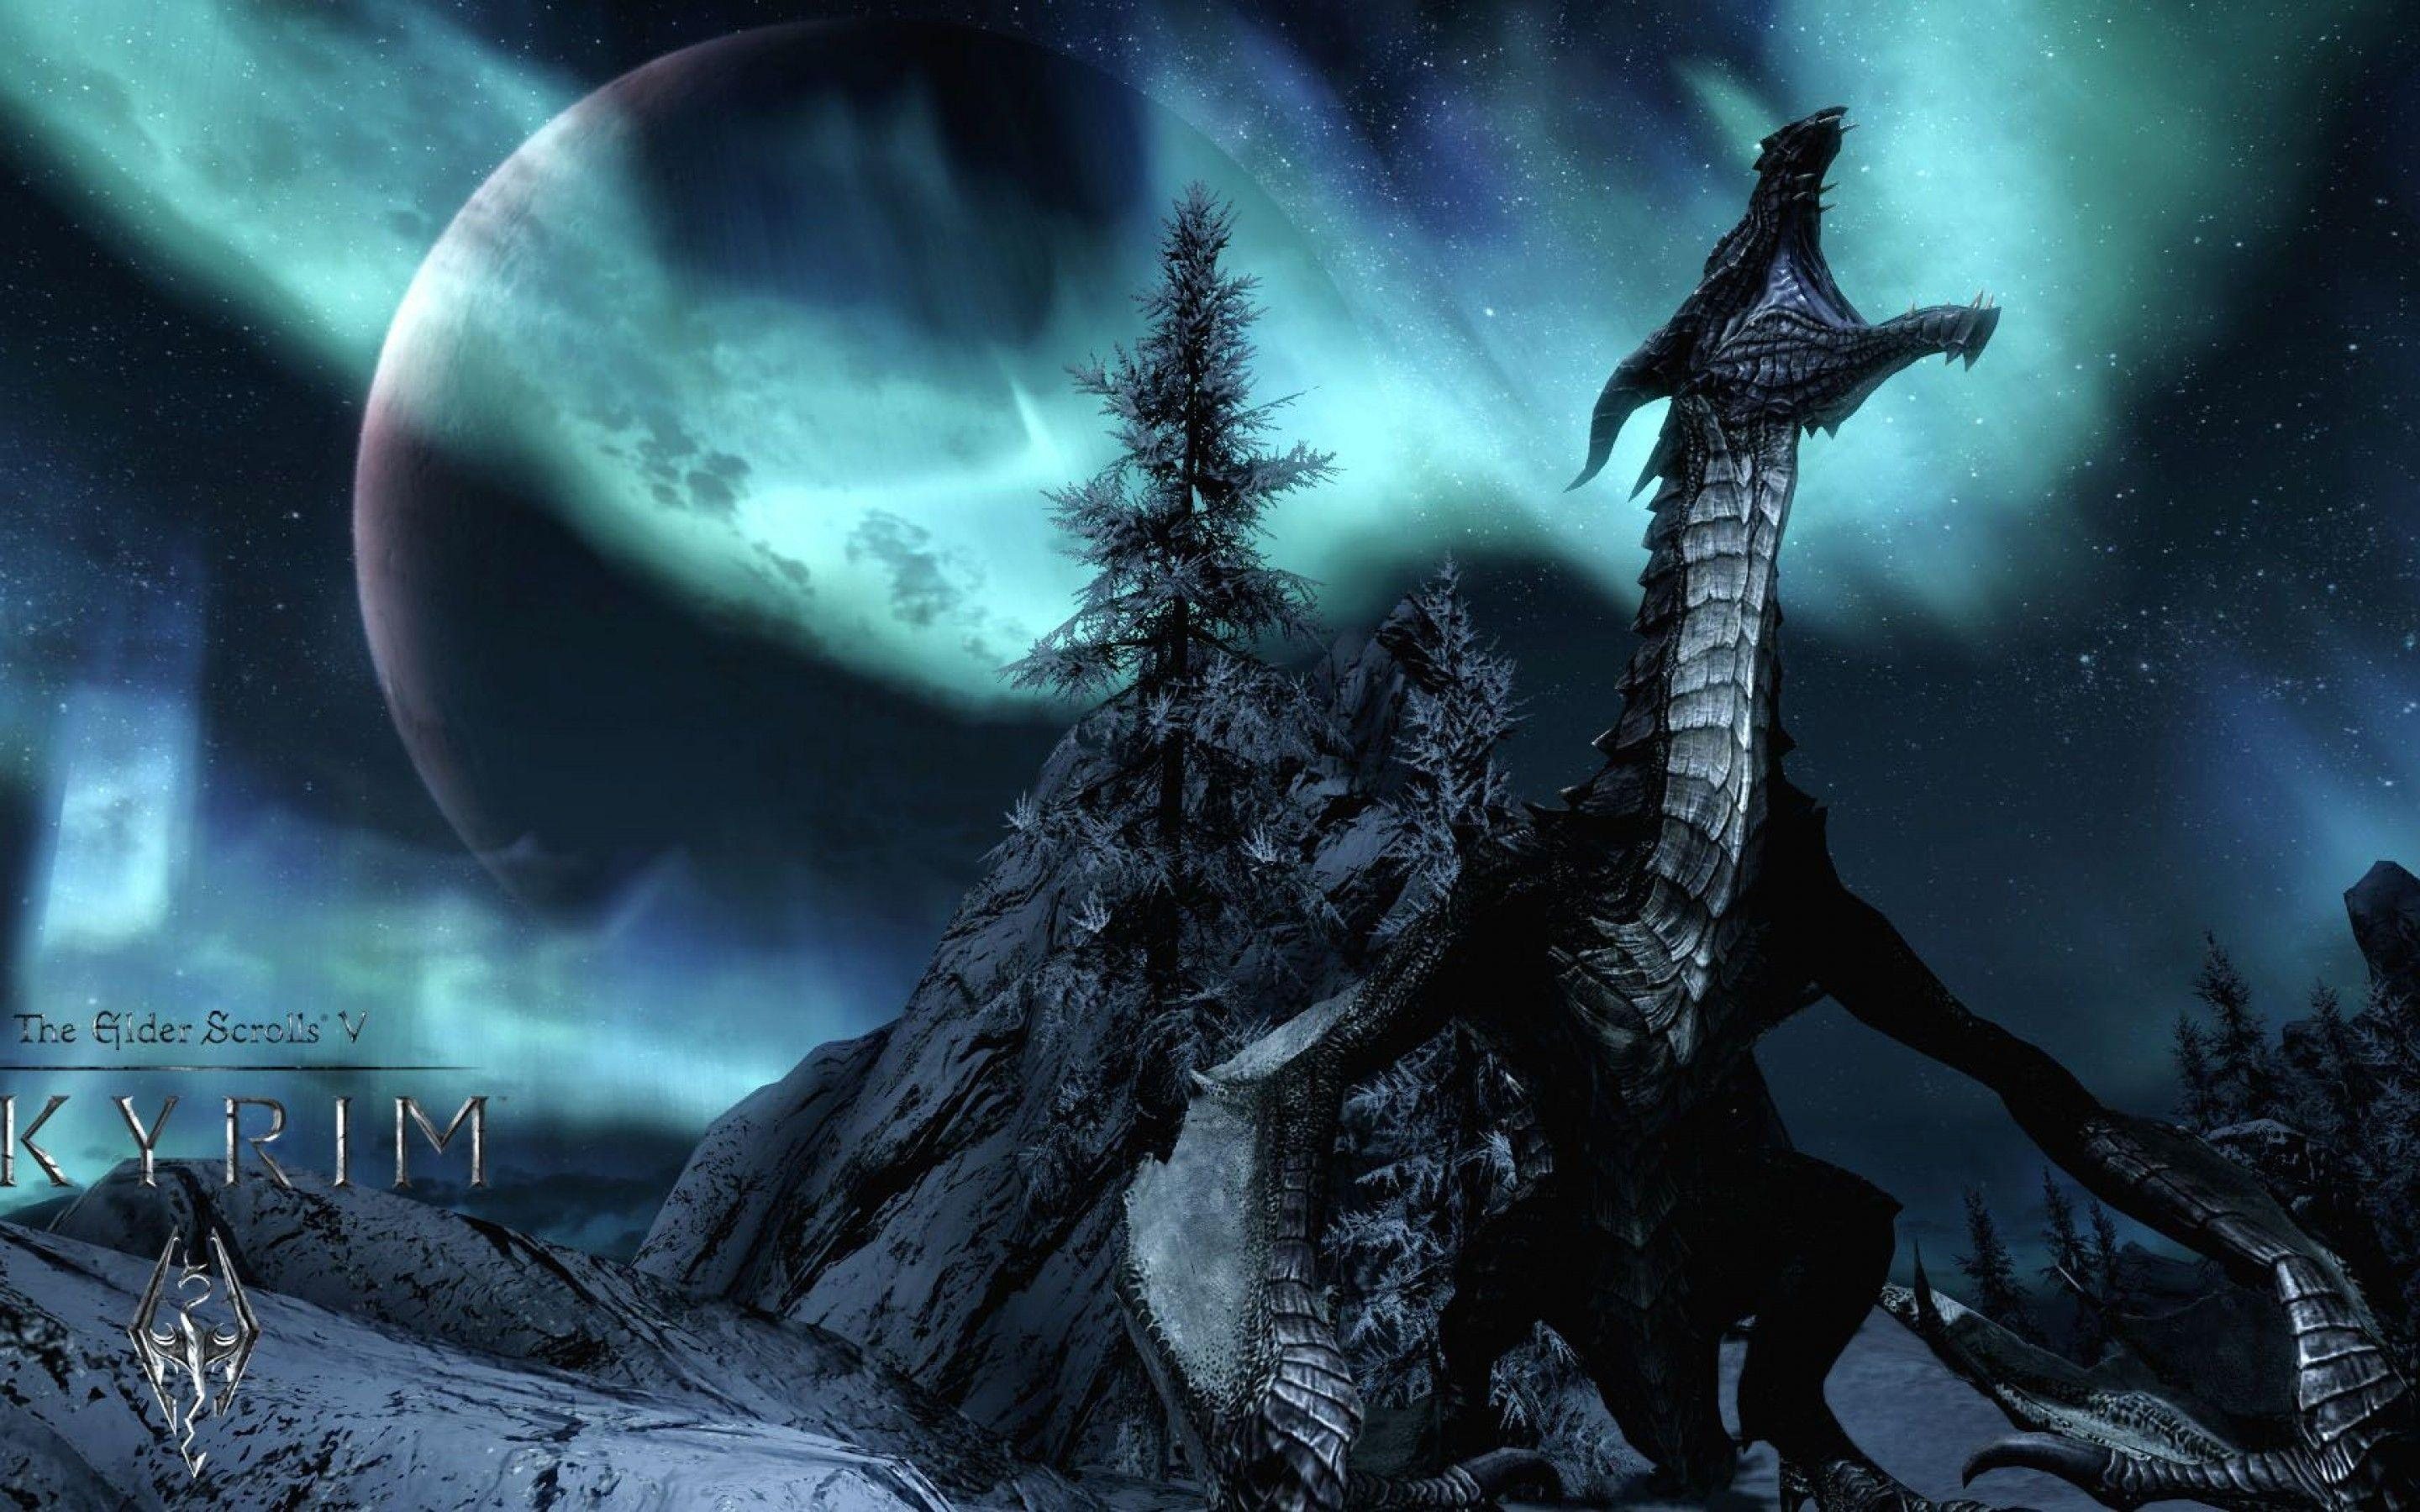 skyrim hd wallpapers 1366x768 - photo #11